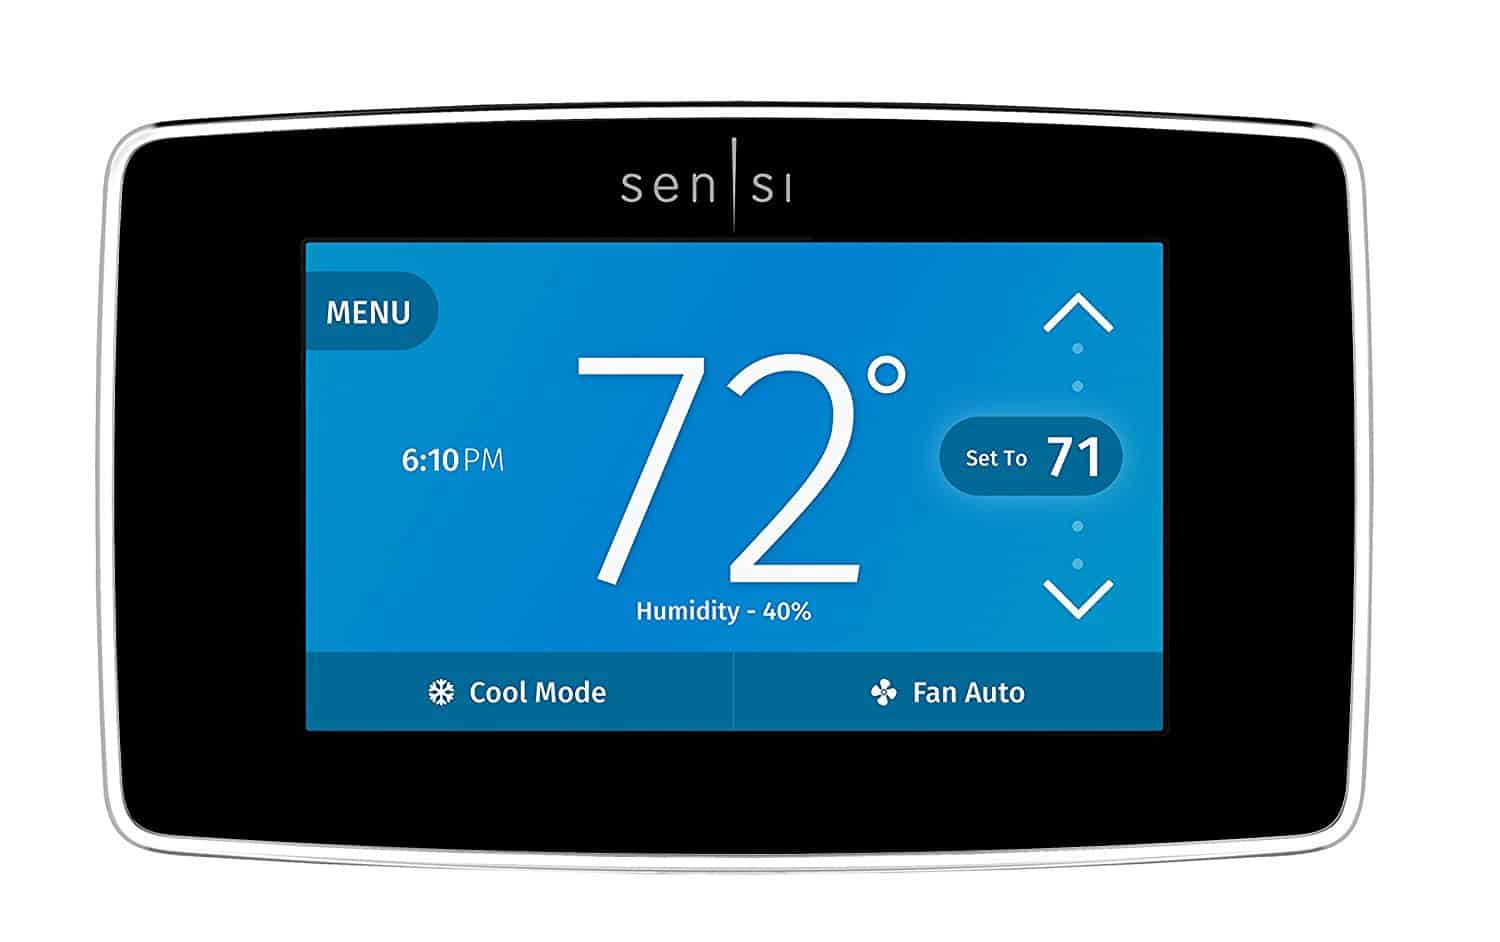 A head on view of the Emerson Sensi ST75 Thermostat.